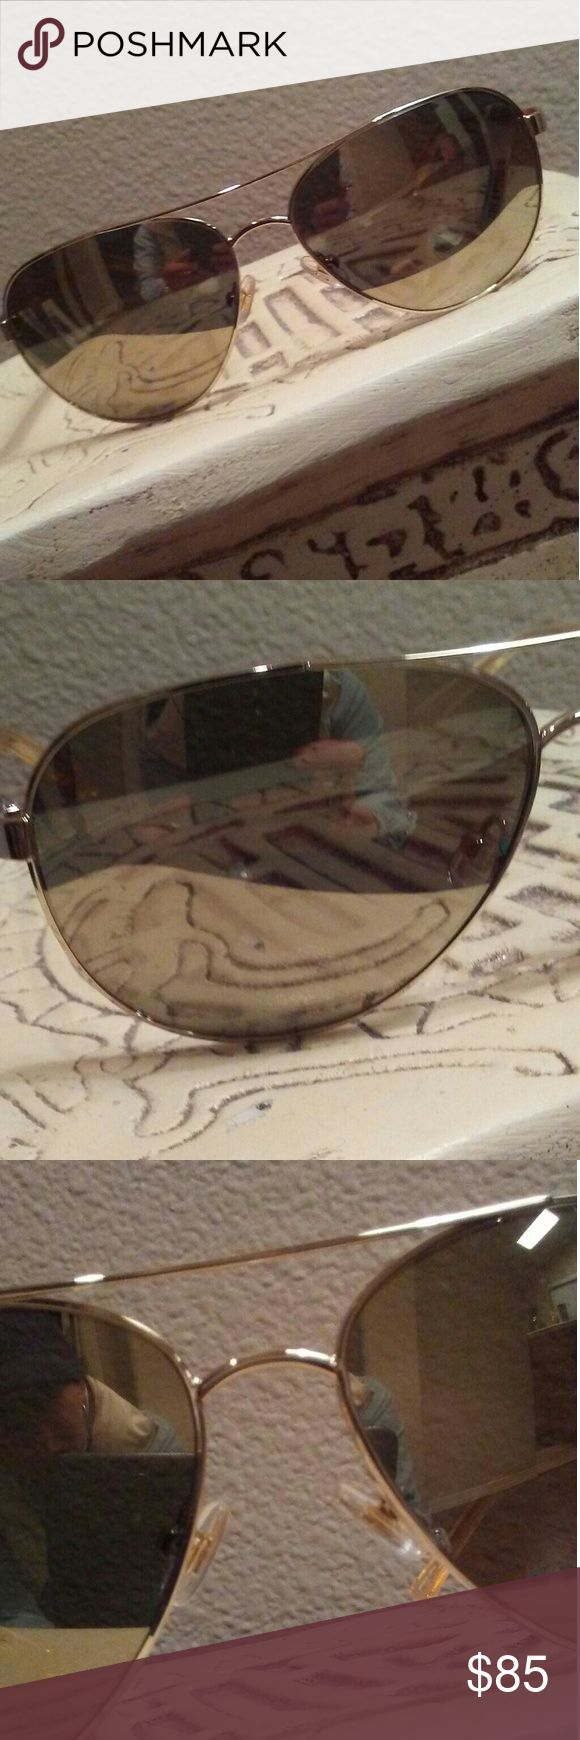 "Kate Spade ""Blossom"" Gold Aviator Sunglasses NWT! Brand-new, unopened, with original tags. 100% authentic Kate Spade New York shades! These are the Blossom in gold frames with gold mirrored lenses. Super amazing! Perfect for this Spring and Summer fashion! Medium size. Comes with the ks teal case shown here. Ret. $95+ tax. Comes from a smoke-free and pet-free home. kate spade Accessories Glasses"